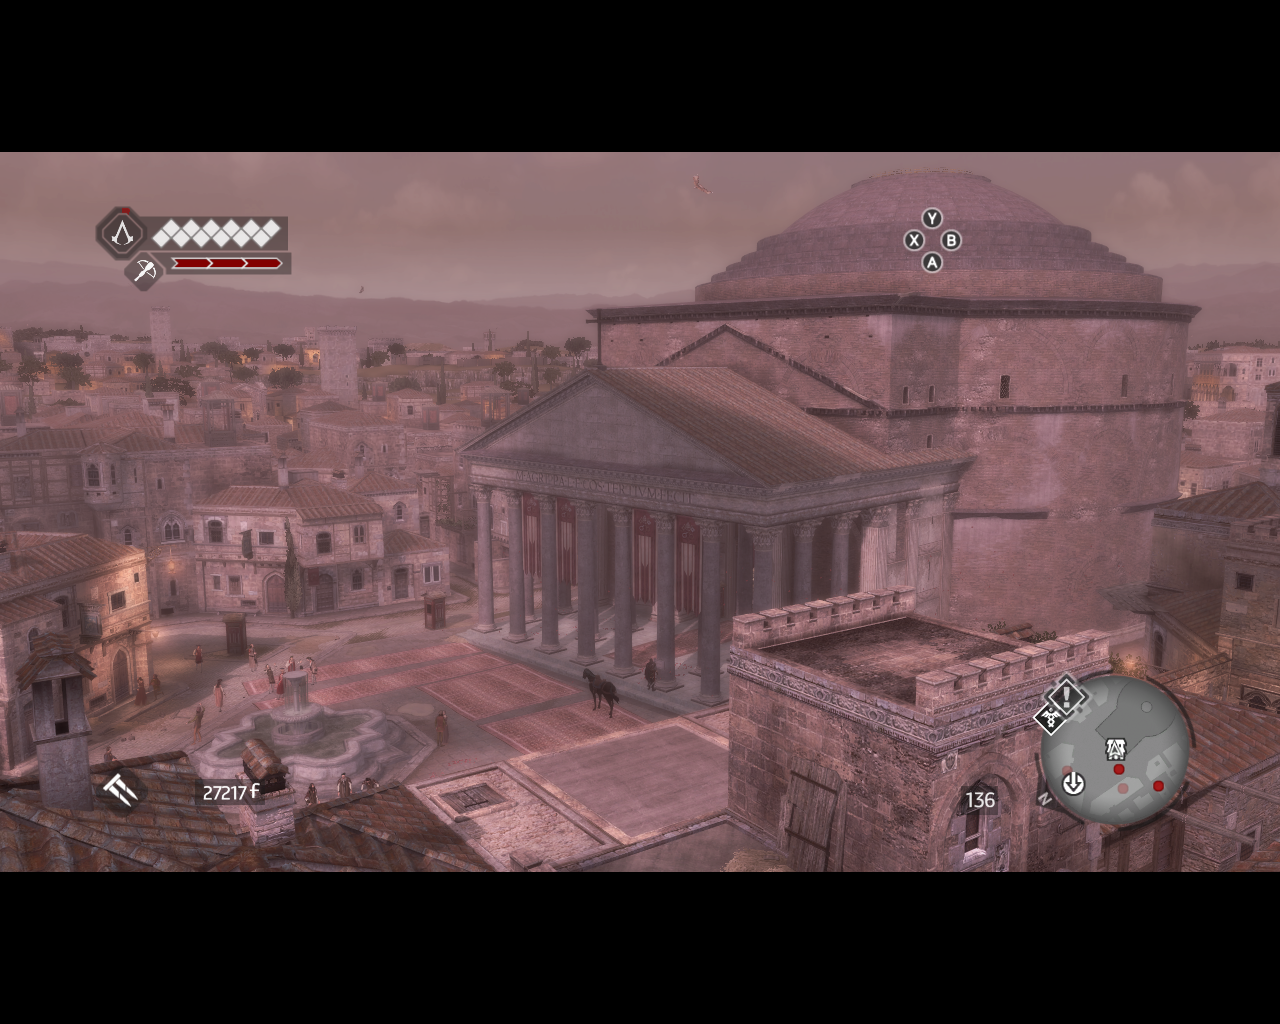 Assassin's Creed: Brotherhood Windows Ezio invests in Rome's economy buying buildings and upgrading the shops